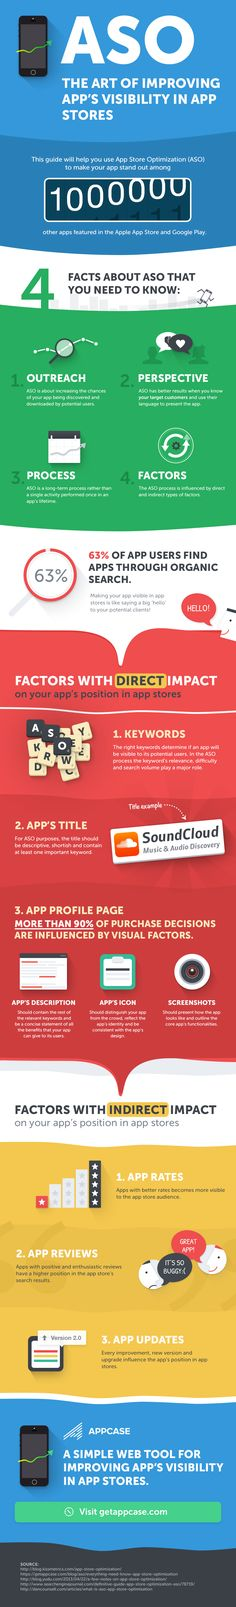 App Store Optimization | ASO | NEW infographic from Gummicube ...